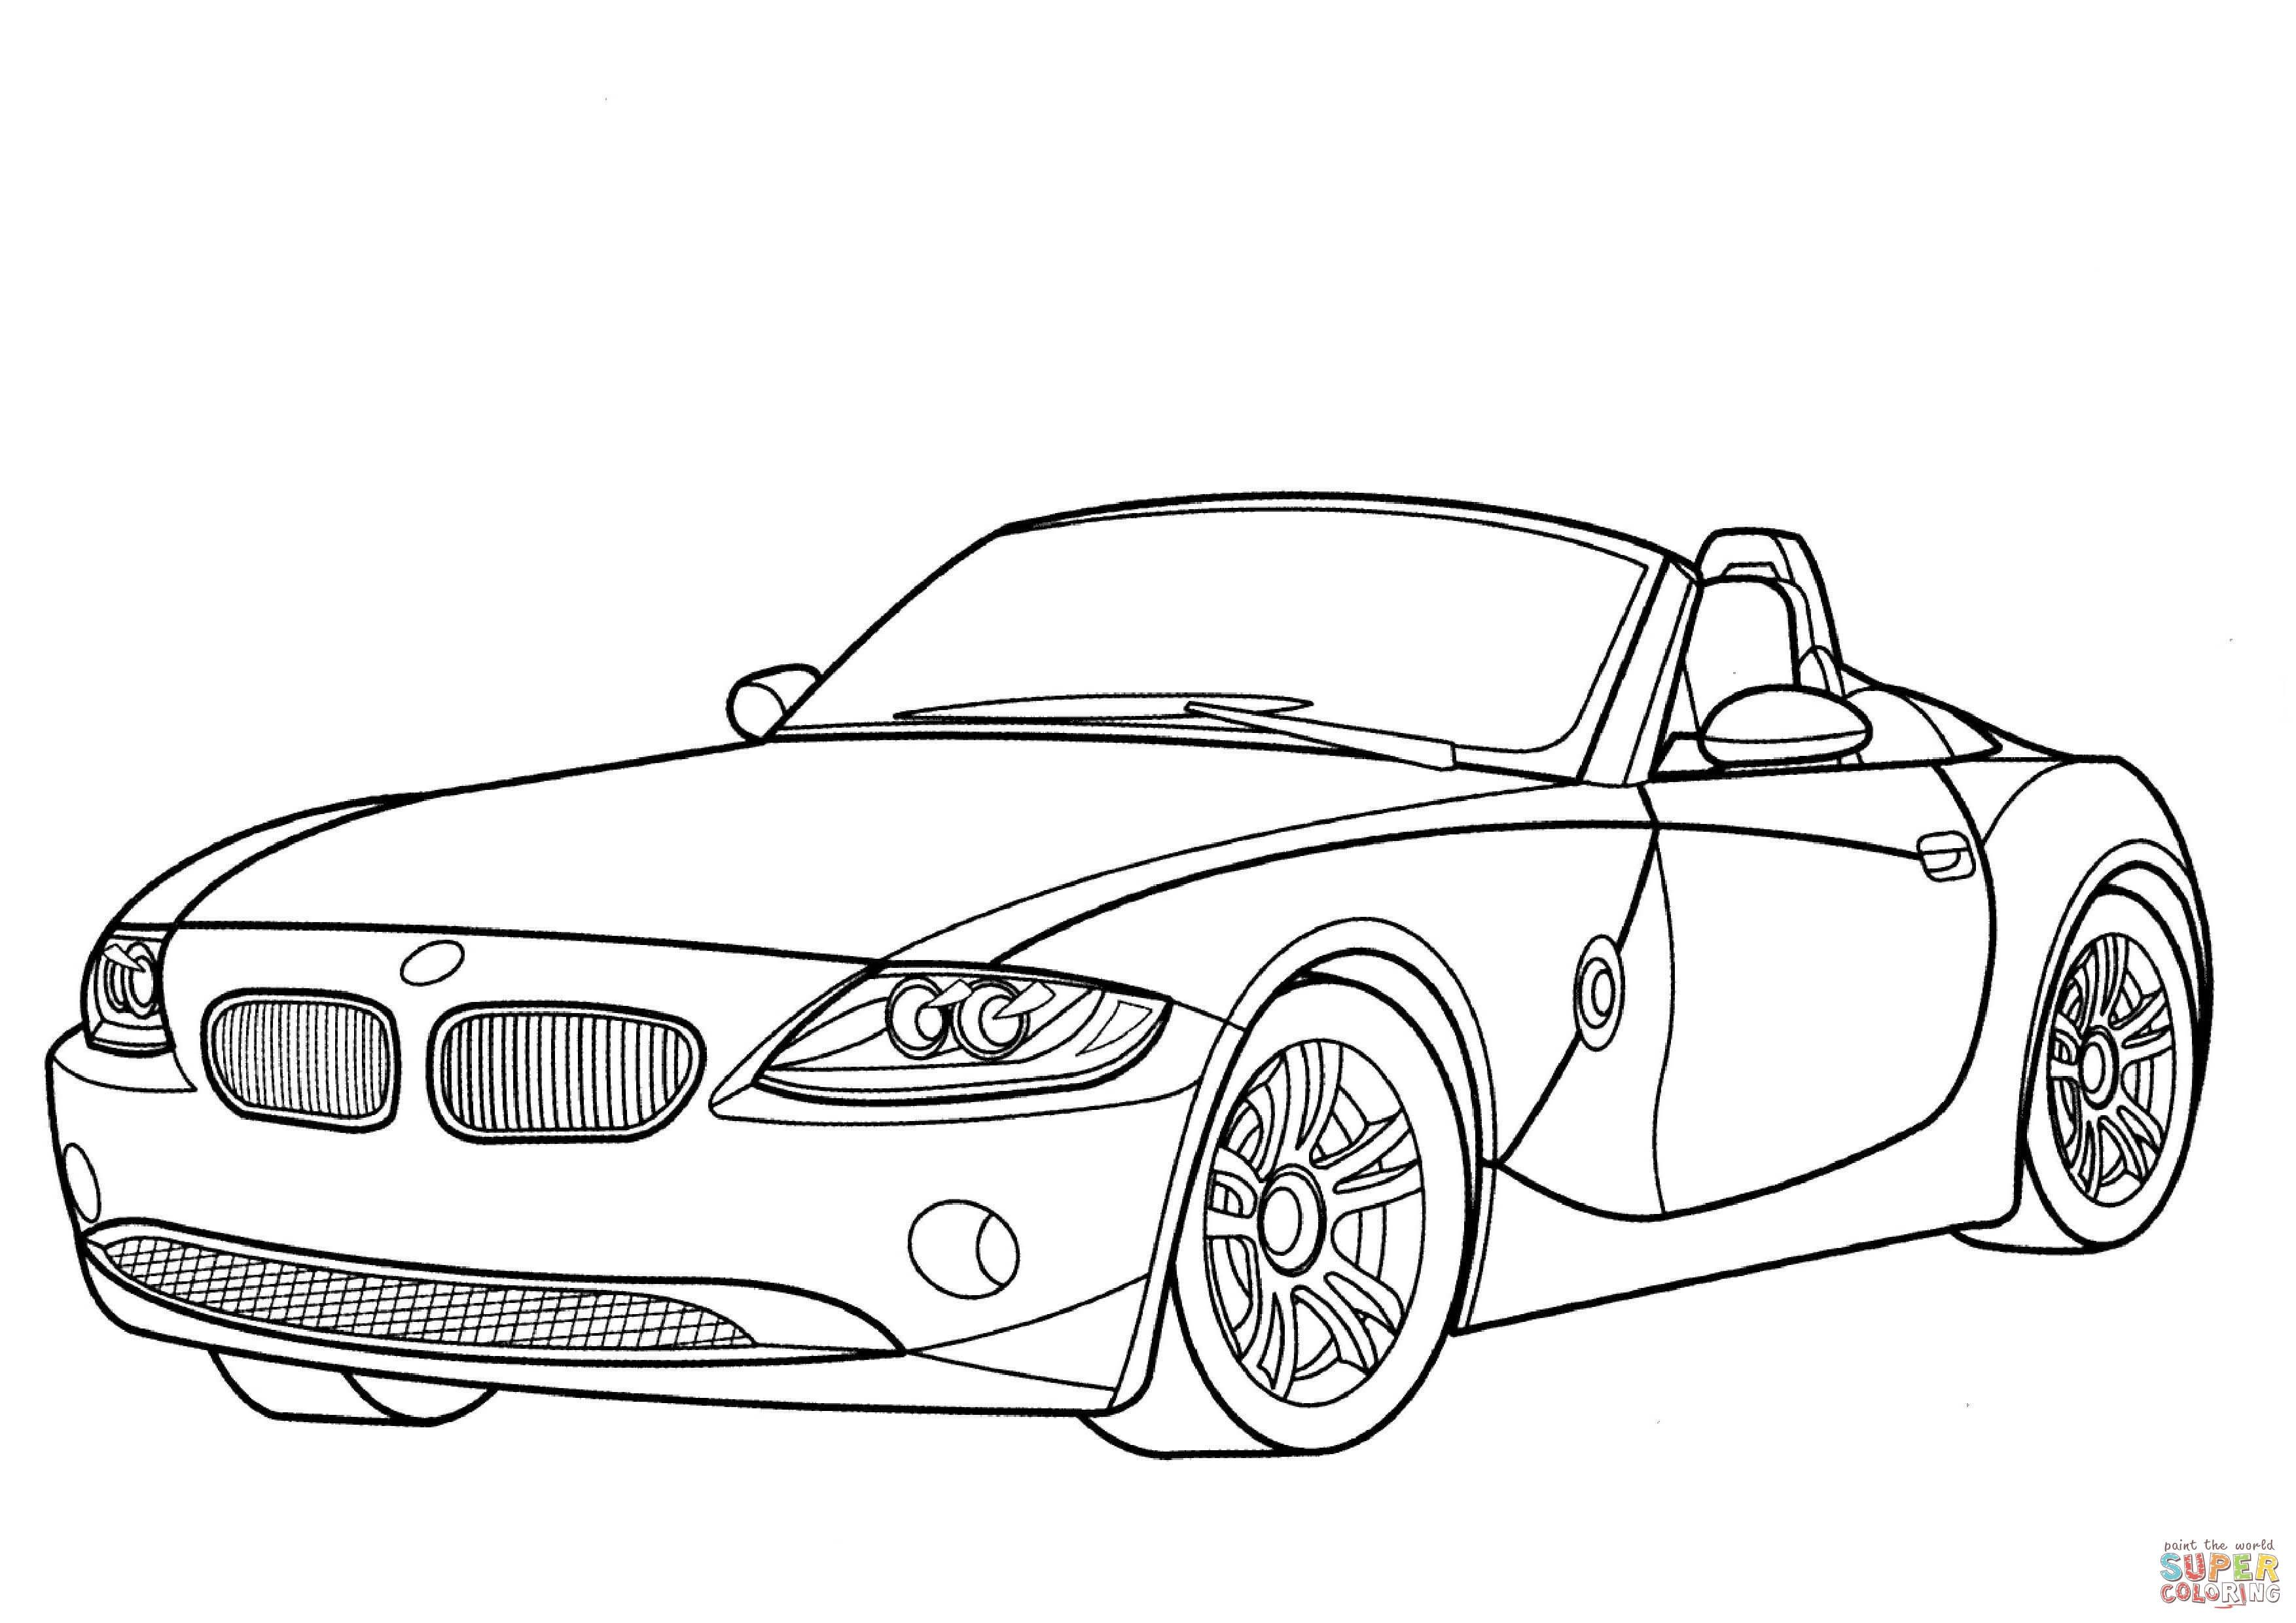 Bmw Z4 Cabriolet Super Coloring Coloring Pages Cars Coloring